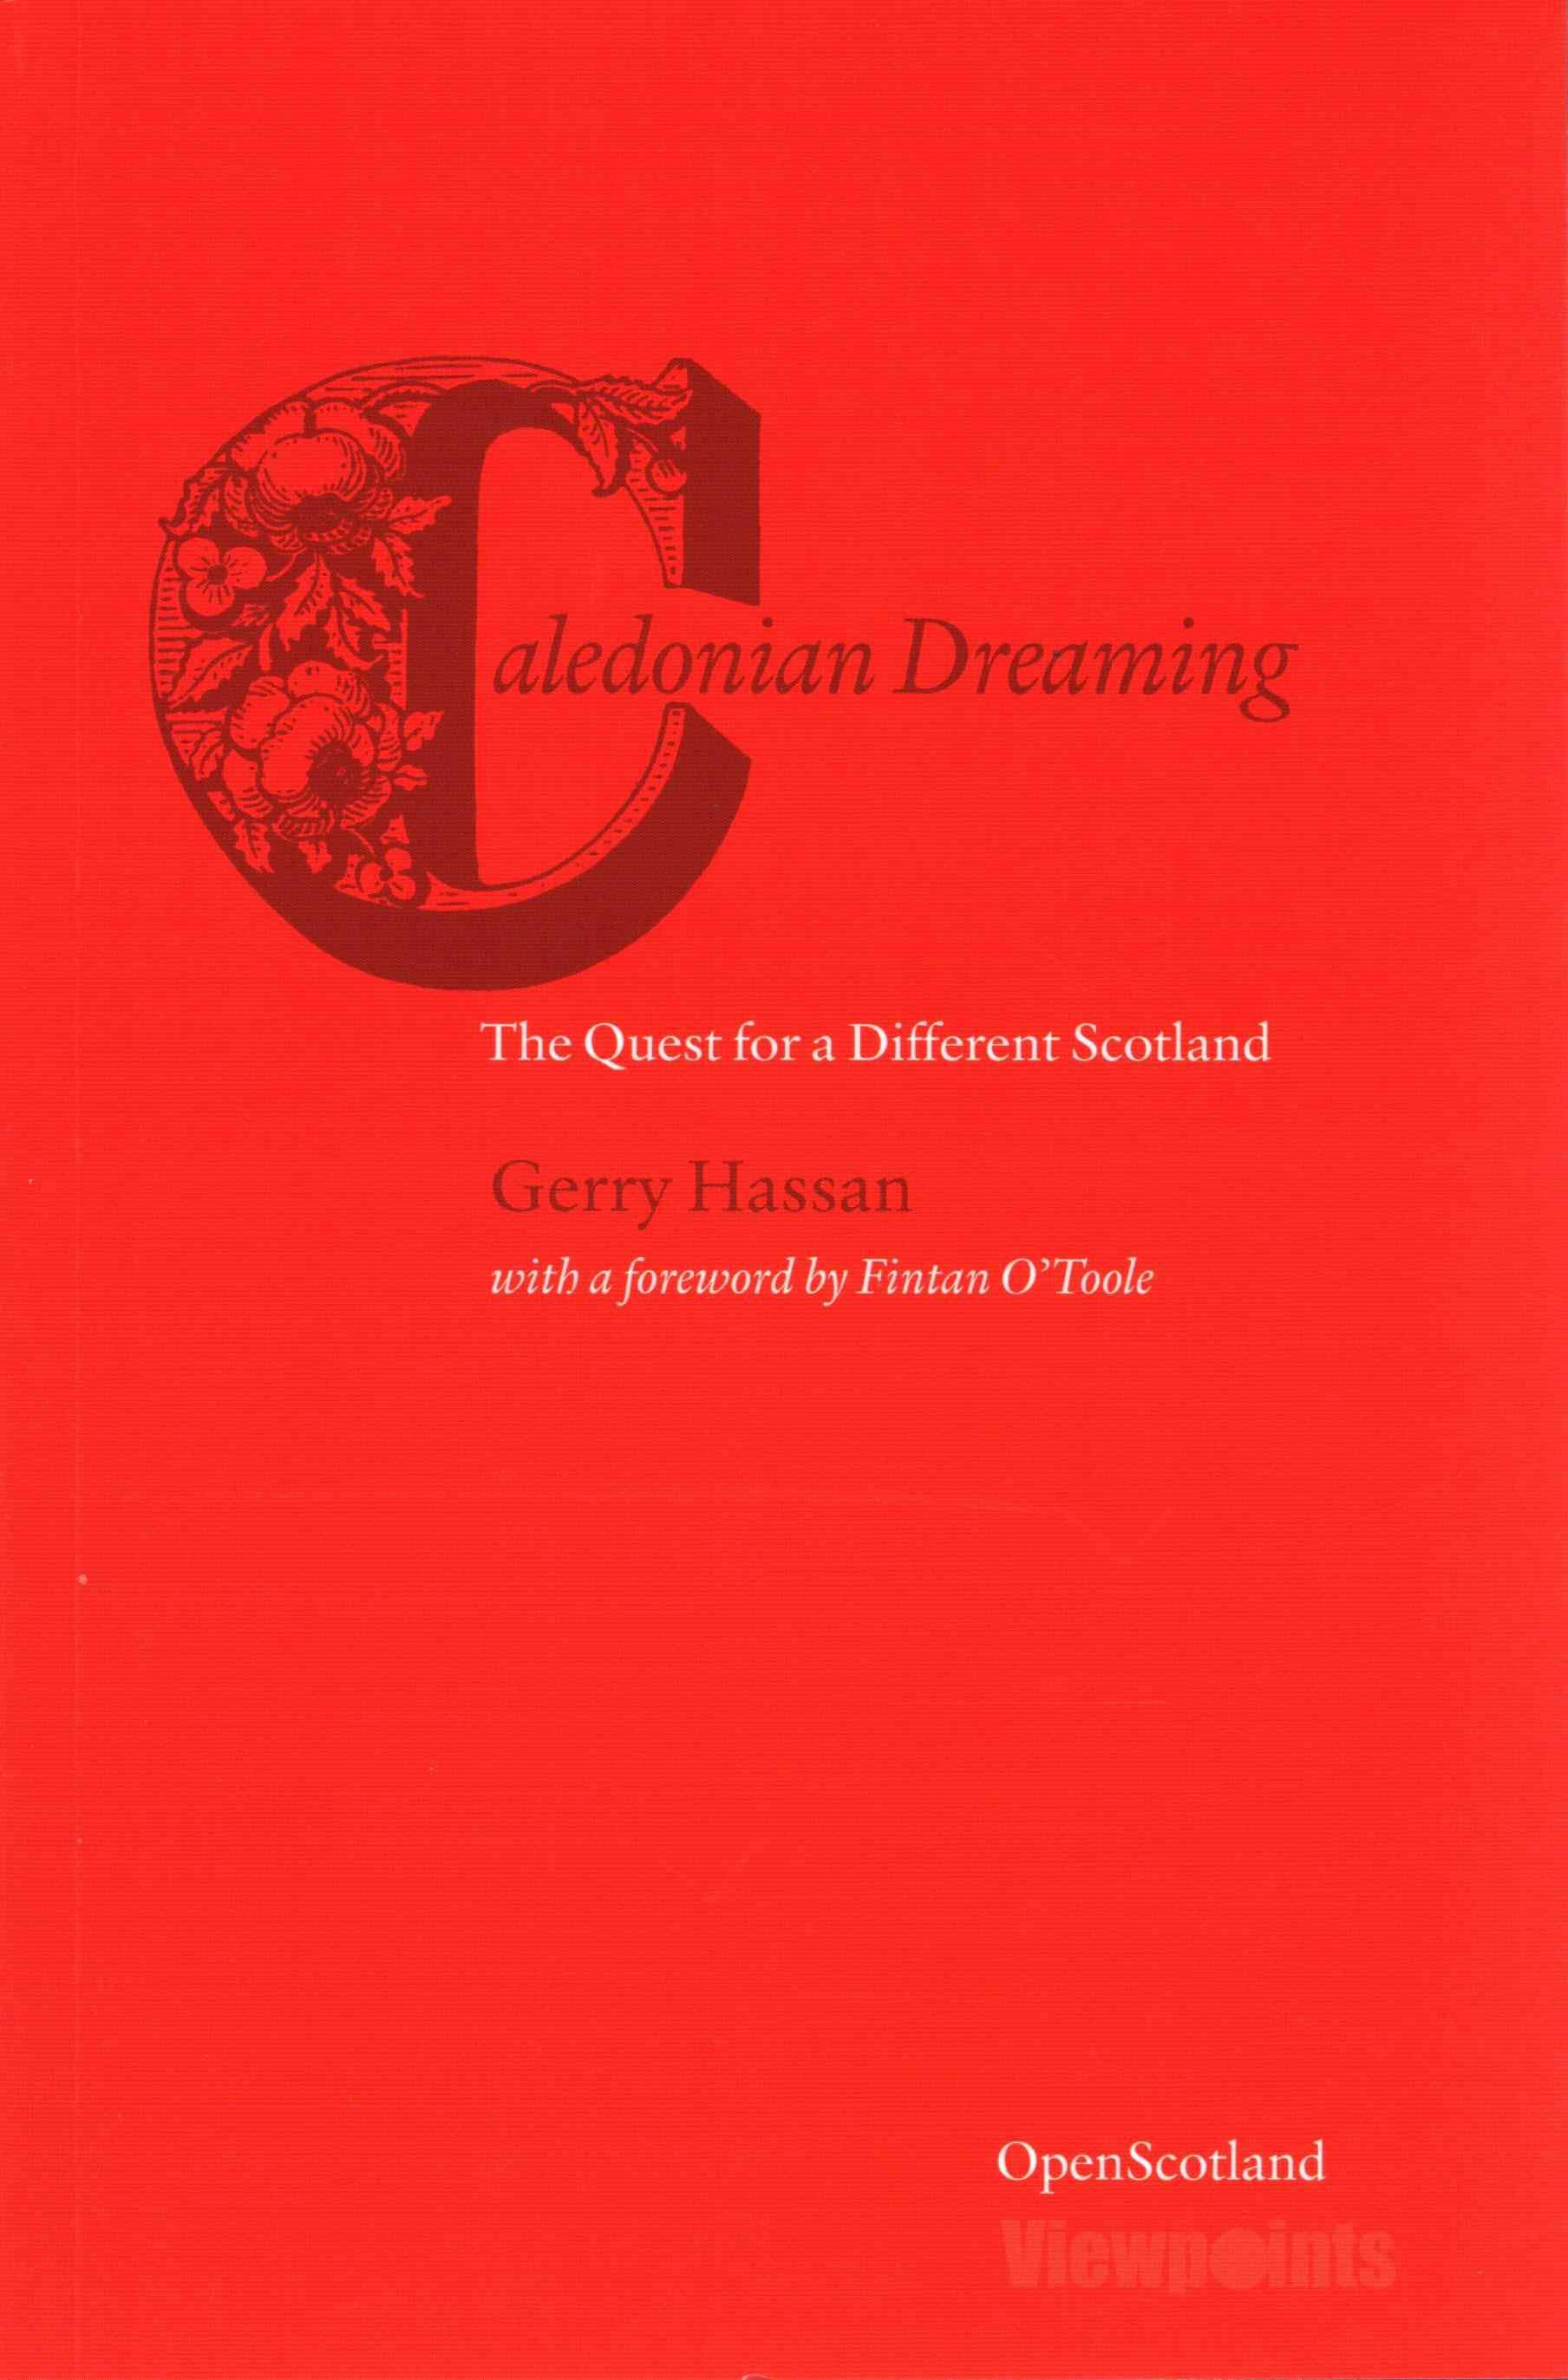 Caledonian Dreaming: The Quest for a Different Scotland